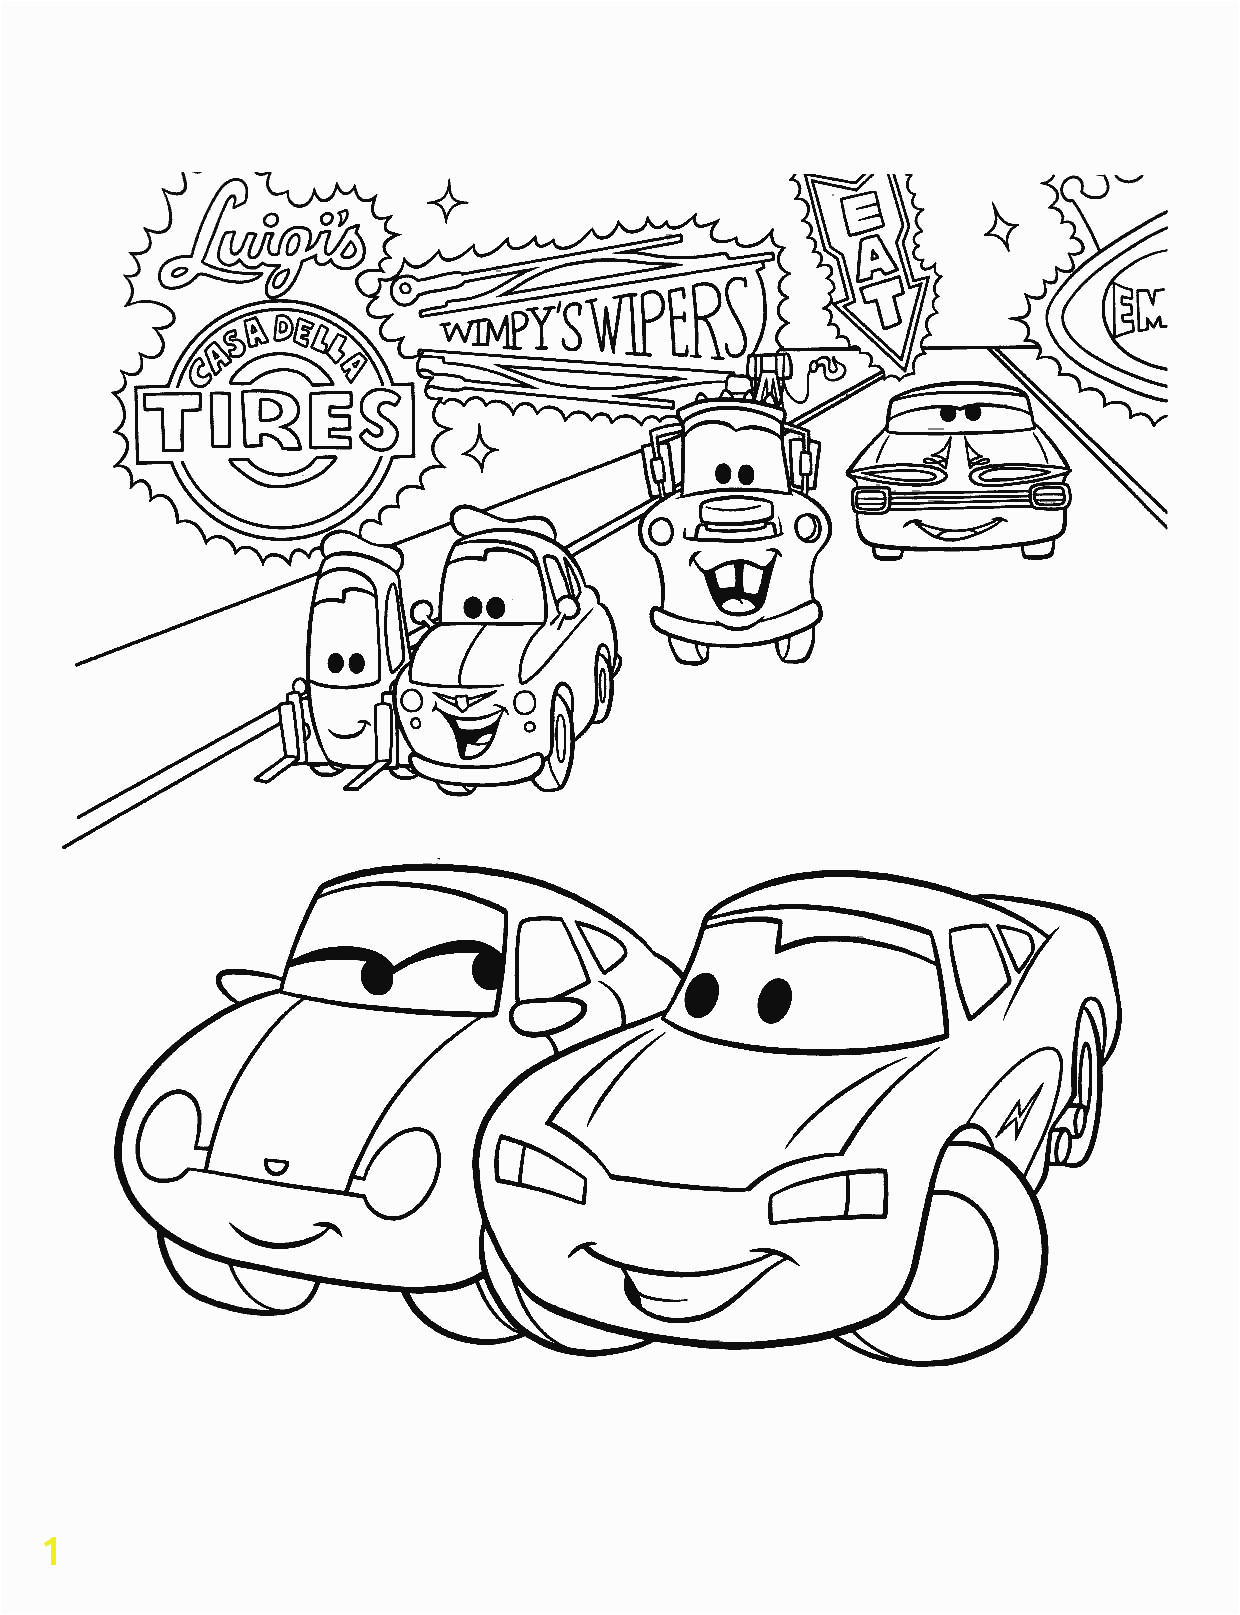 Lightning Mcqueen and Mater Coloring Pages to Print Lightning Mcqueen and Friends Coloring Pages Coloring Pages